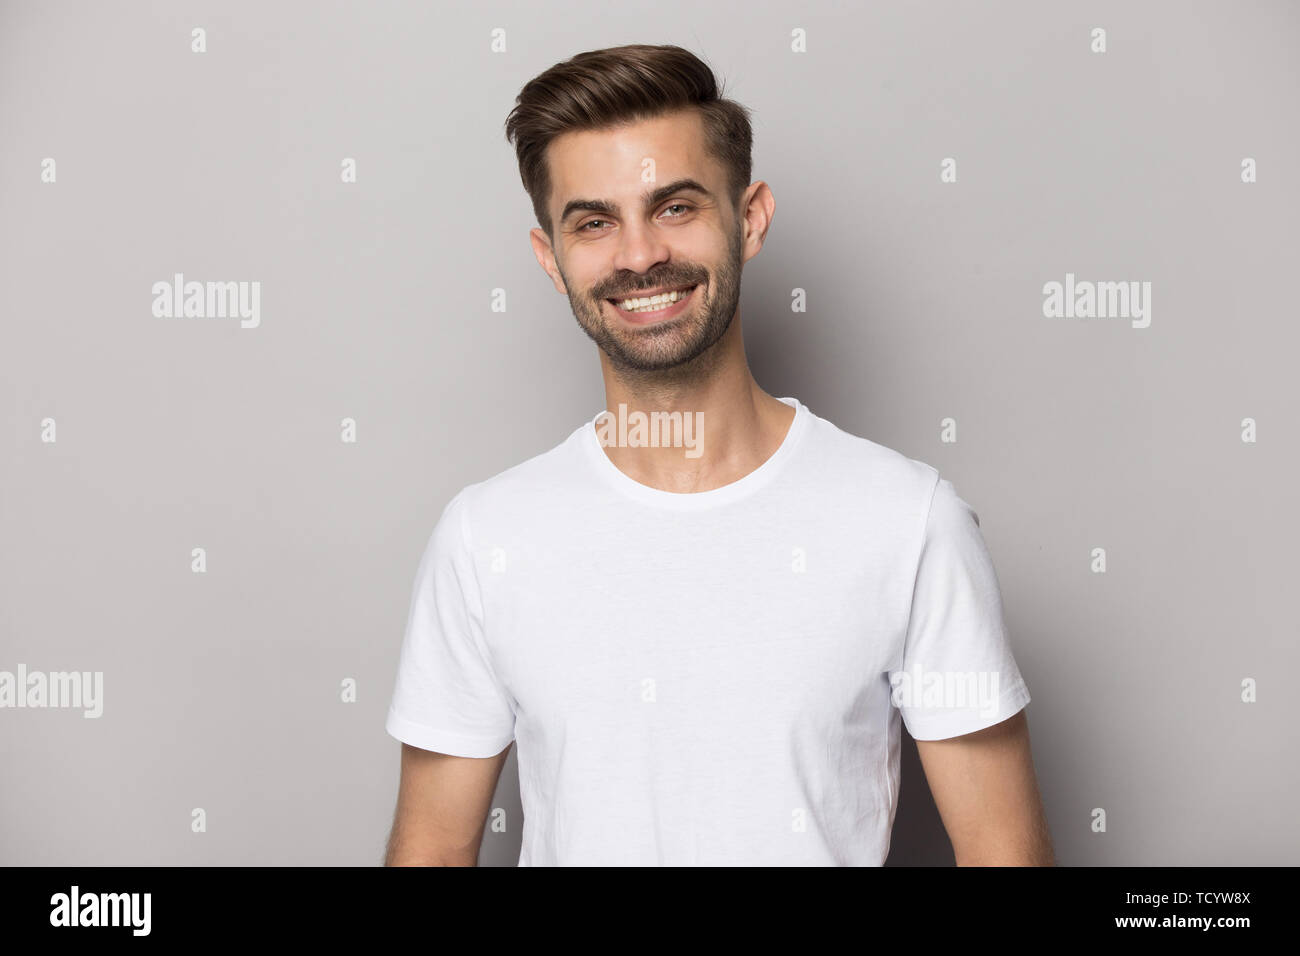 Attractive positive guy with snow-white smile looking at camera - Stock Image